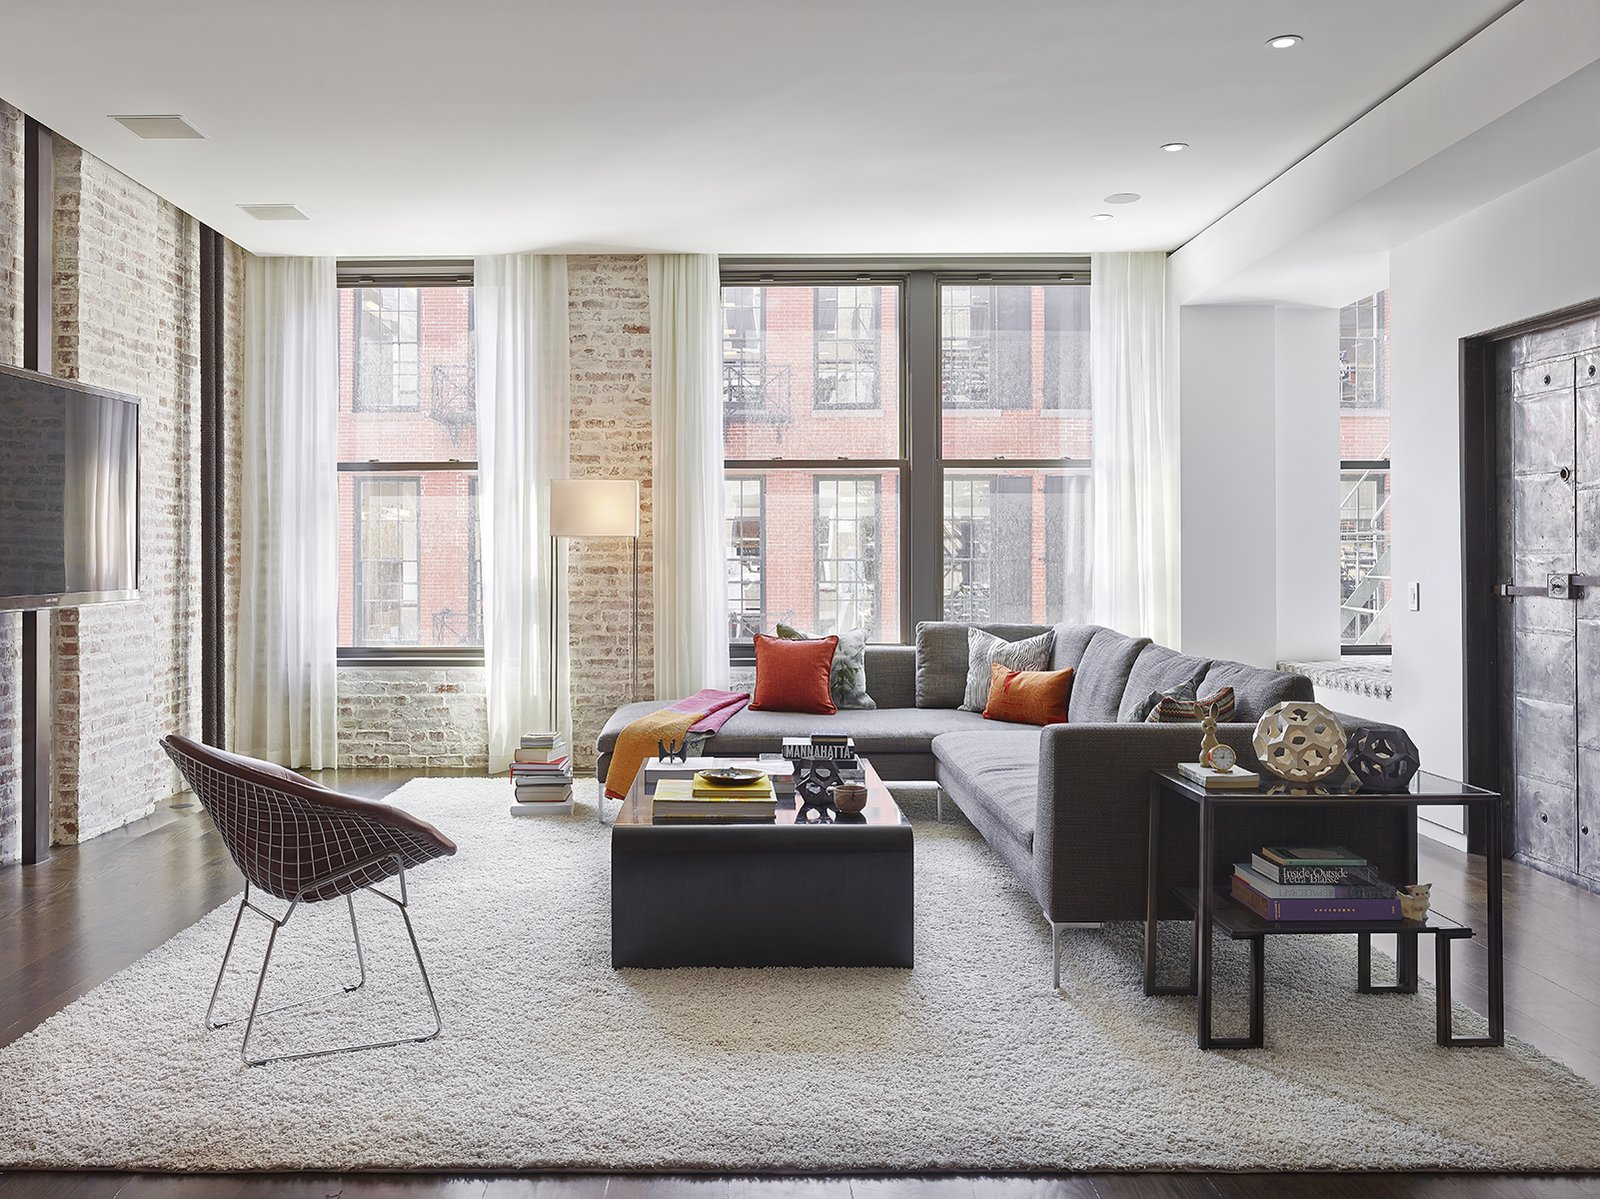 The residence is located on Crosby Street, which is part of the landmarked SoHo Cast Iron Historic District. Once a manufacturing and industrial area then an artists' enclave, the neighborhood is now a retail hub. This particular loft used to be a light bulb factory, which informed the renovation's materiality. All of the natural light enters the apartment from the living room windows. 590BC worked with Tamara Eaton Design to furnish the interiors, which holds a mix of refined and rough-hewn pieces. A vintage Harry Bertoia chair holds court with a B&B Italia sofa, shag carpet by Shansom Rugs, steel side table from Global Views, and steel Arco coffee table from Room. Throw pillows upholstered in fabrics from Upstate, Maharam, and Romo add punches of color. Photo by Frank Oudeman.  exposed brick from A Renovated Loft in SoHo